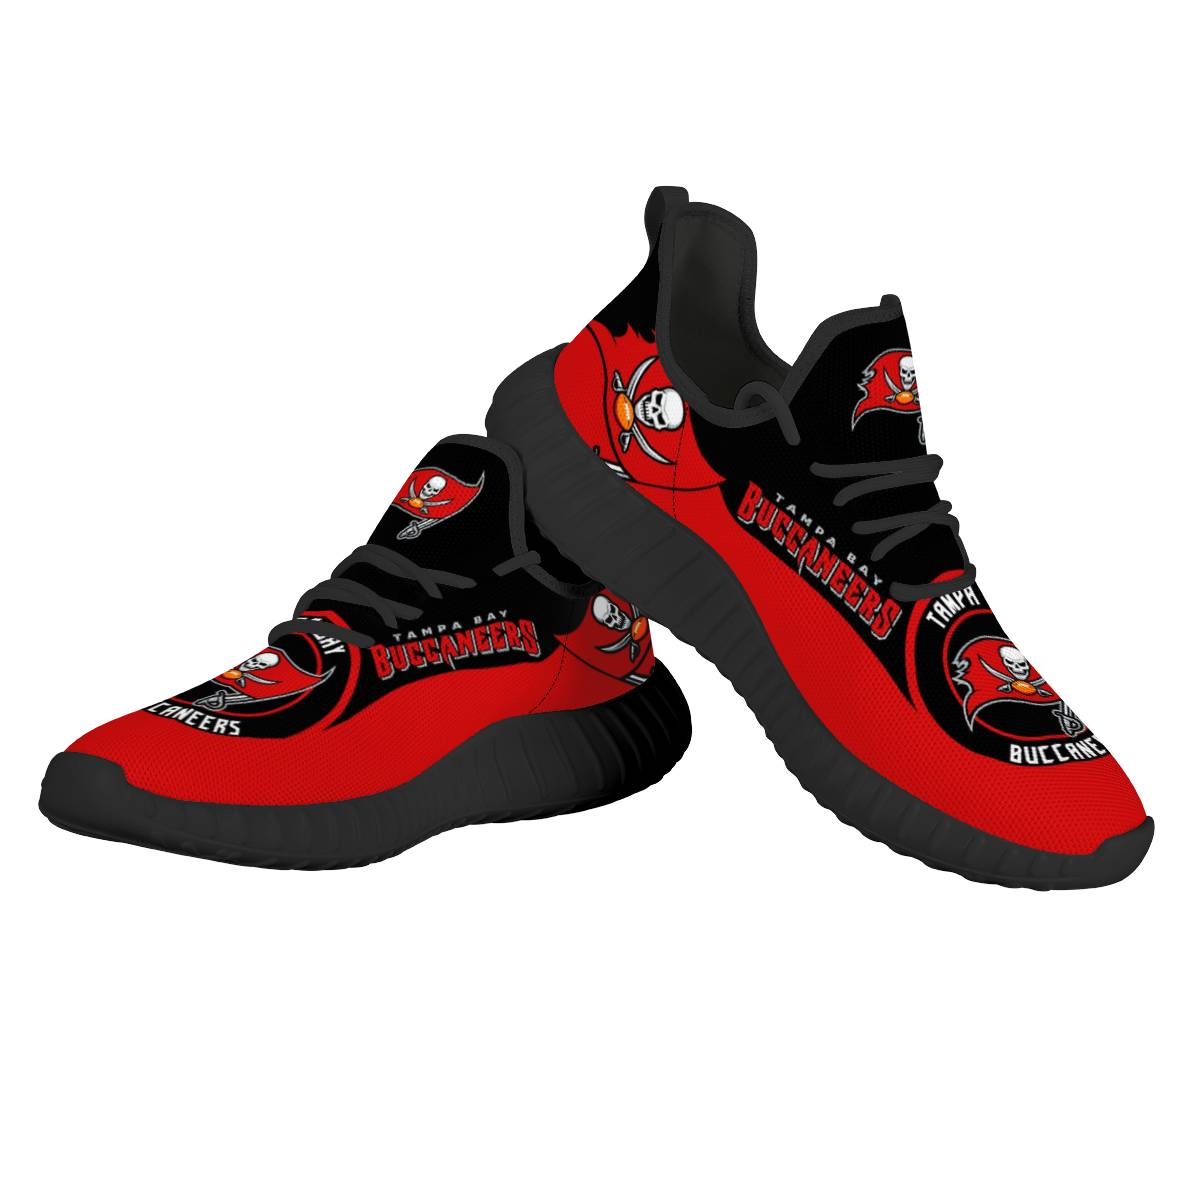 Women's NFL Tampa Bay Buccaneers Mesh Knit Sneakers/Shoes 001